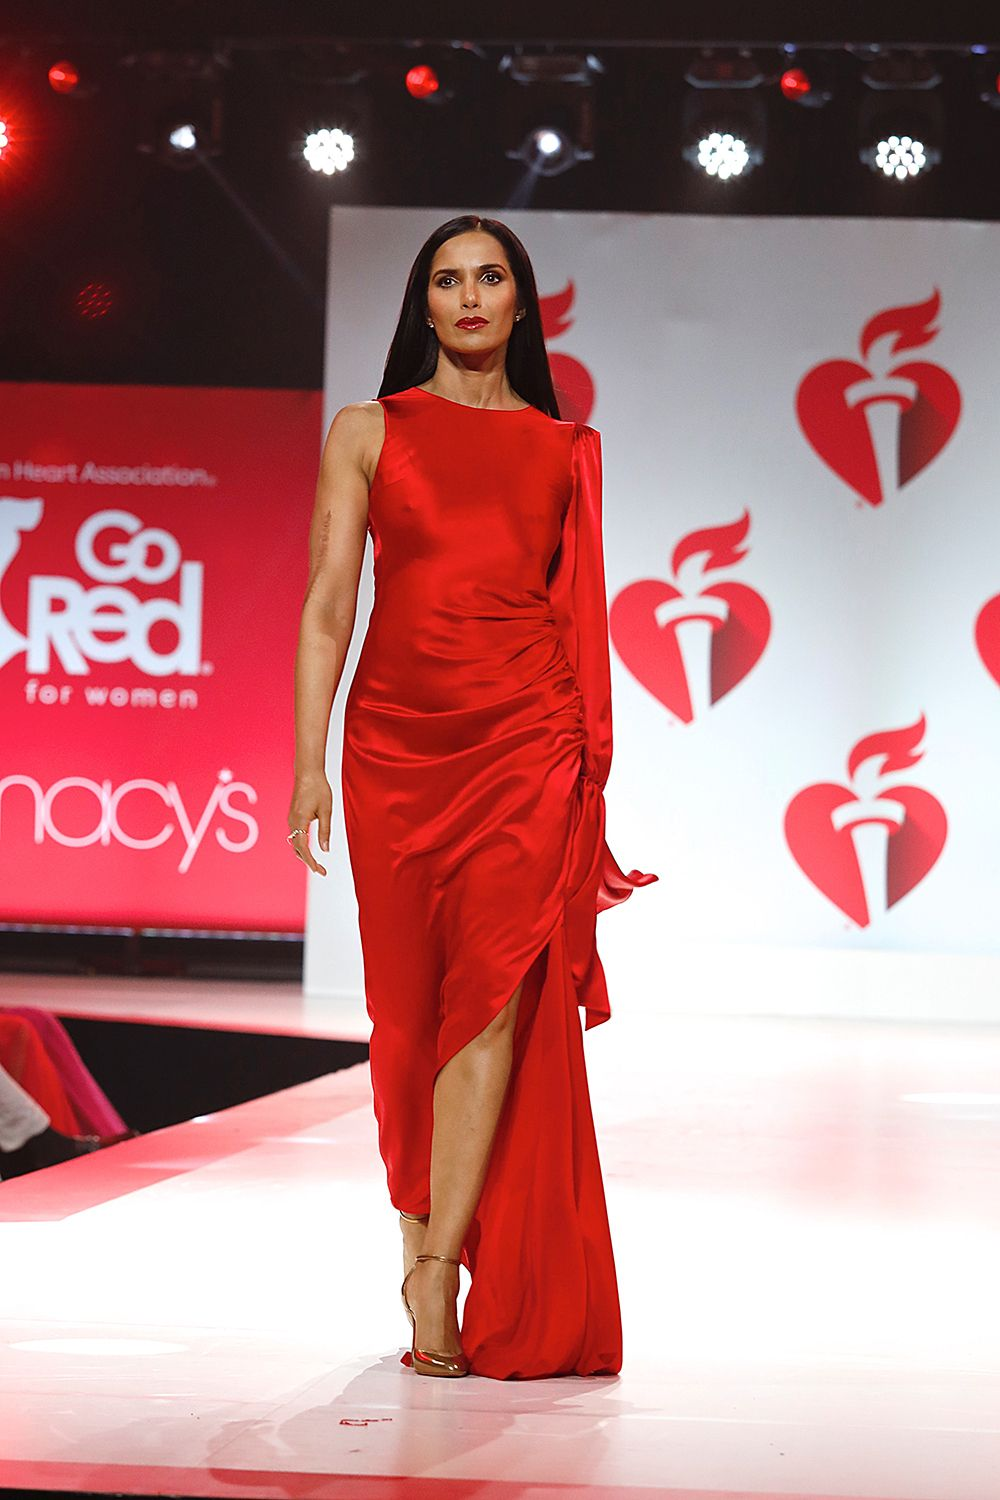 'Go Red for Women' Red Dress Collection Show — PICS Red